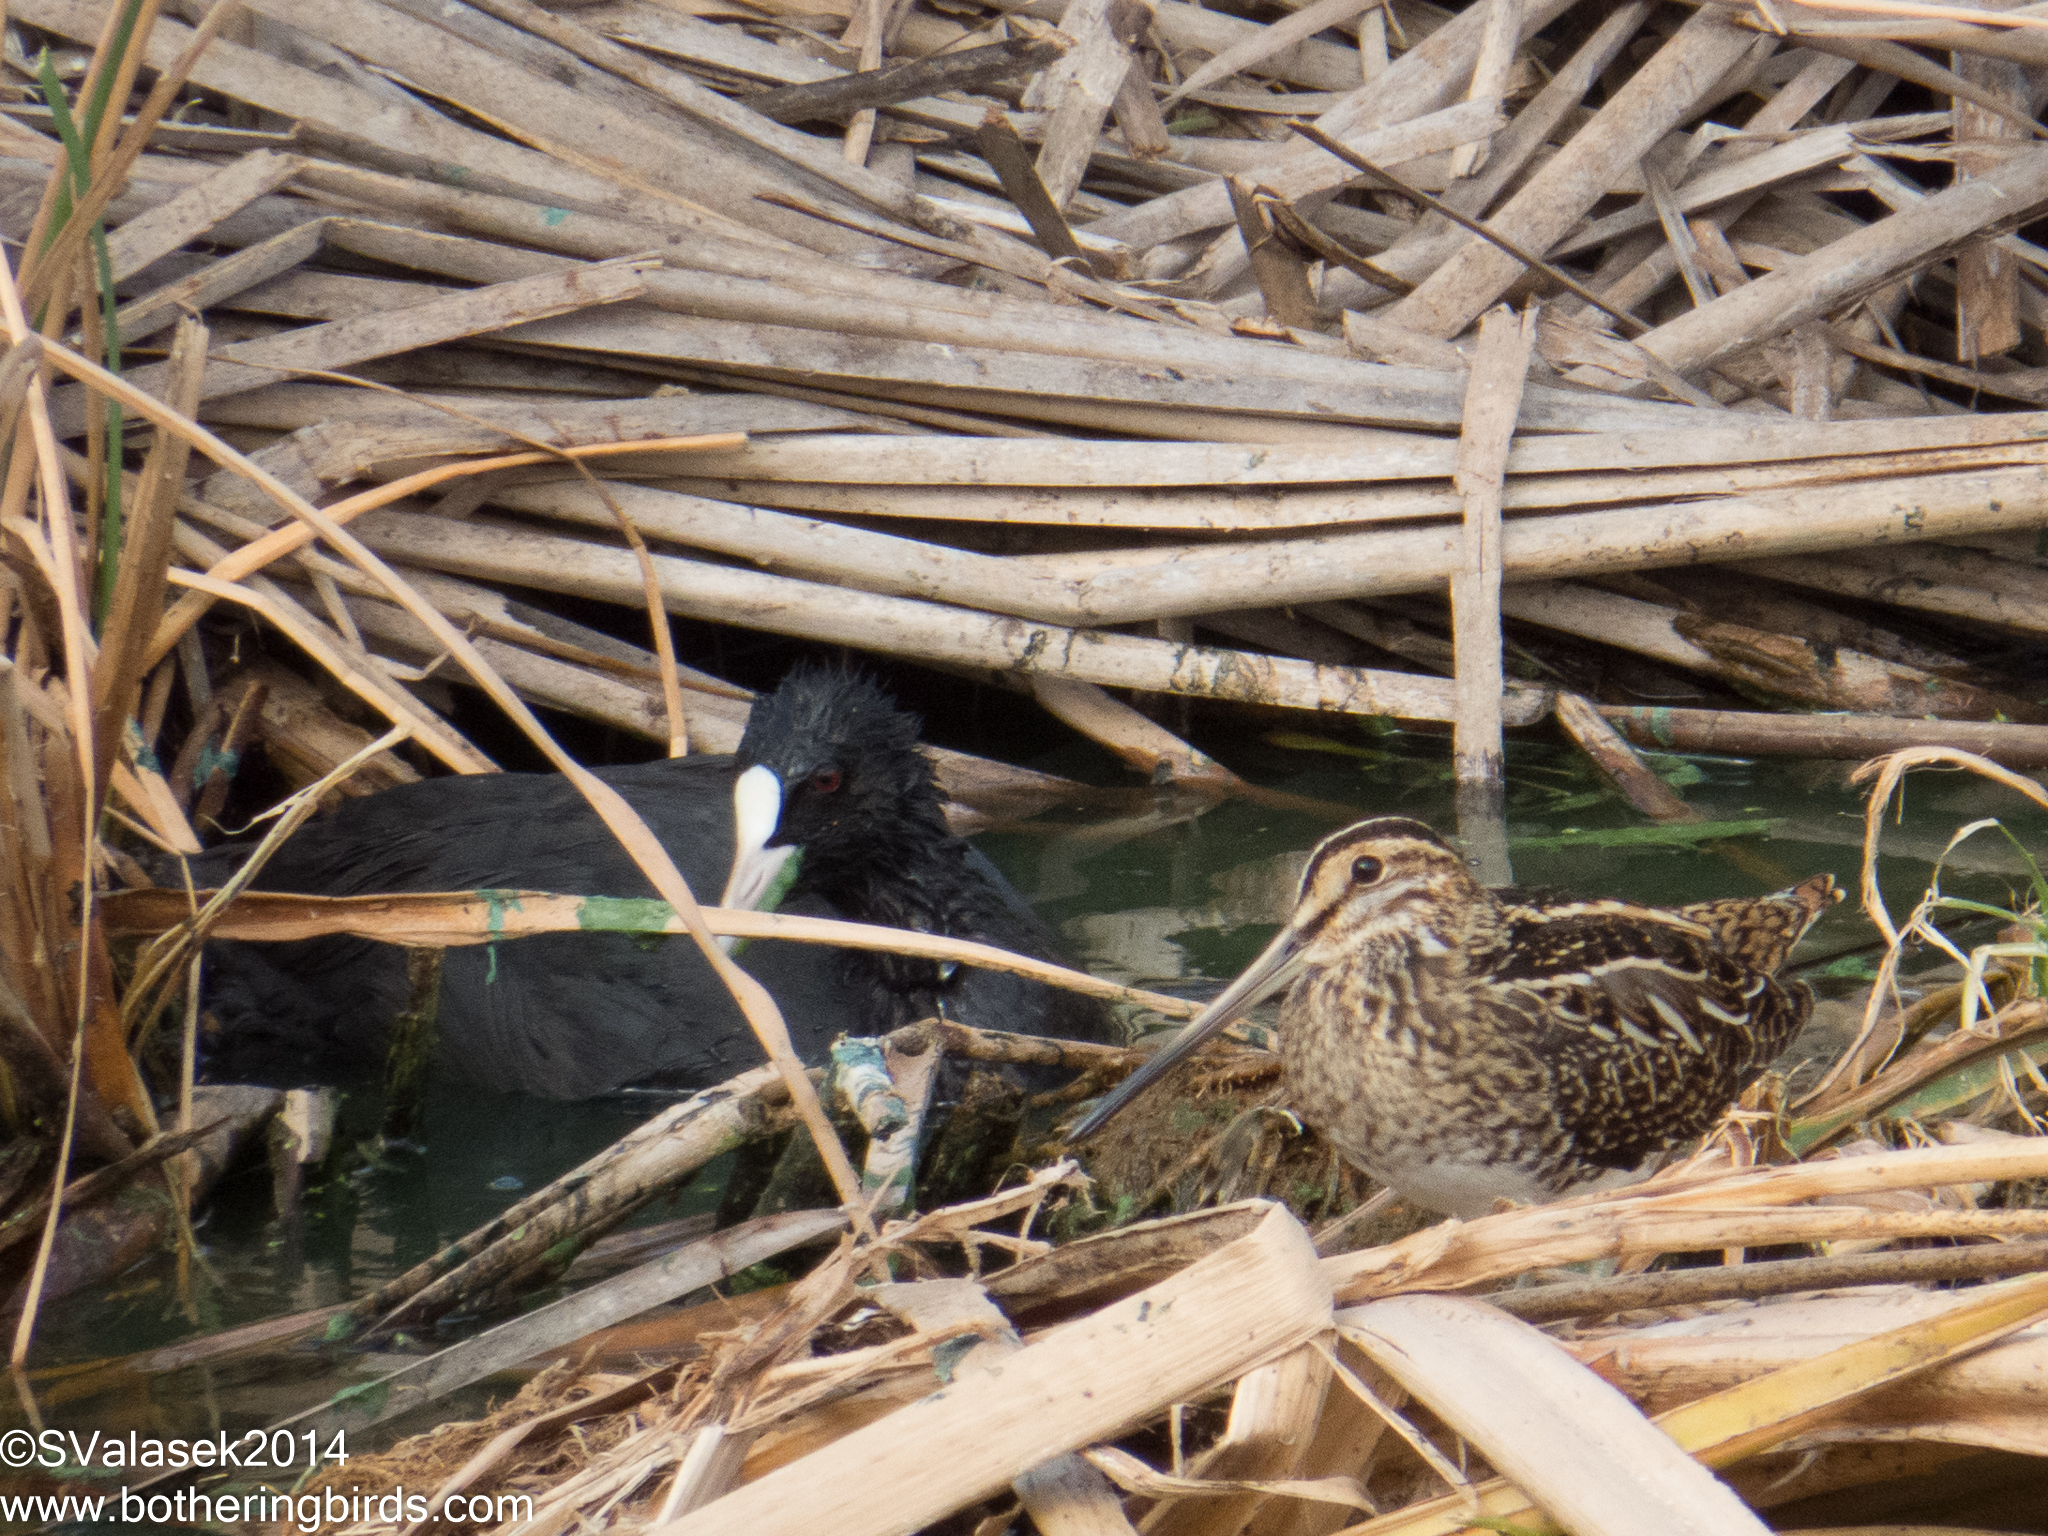 Common Snipe and Coot